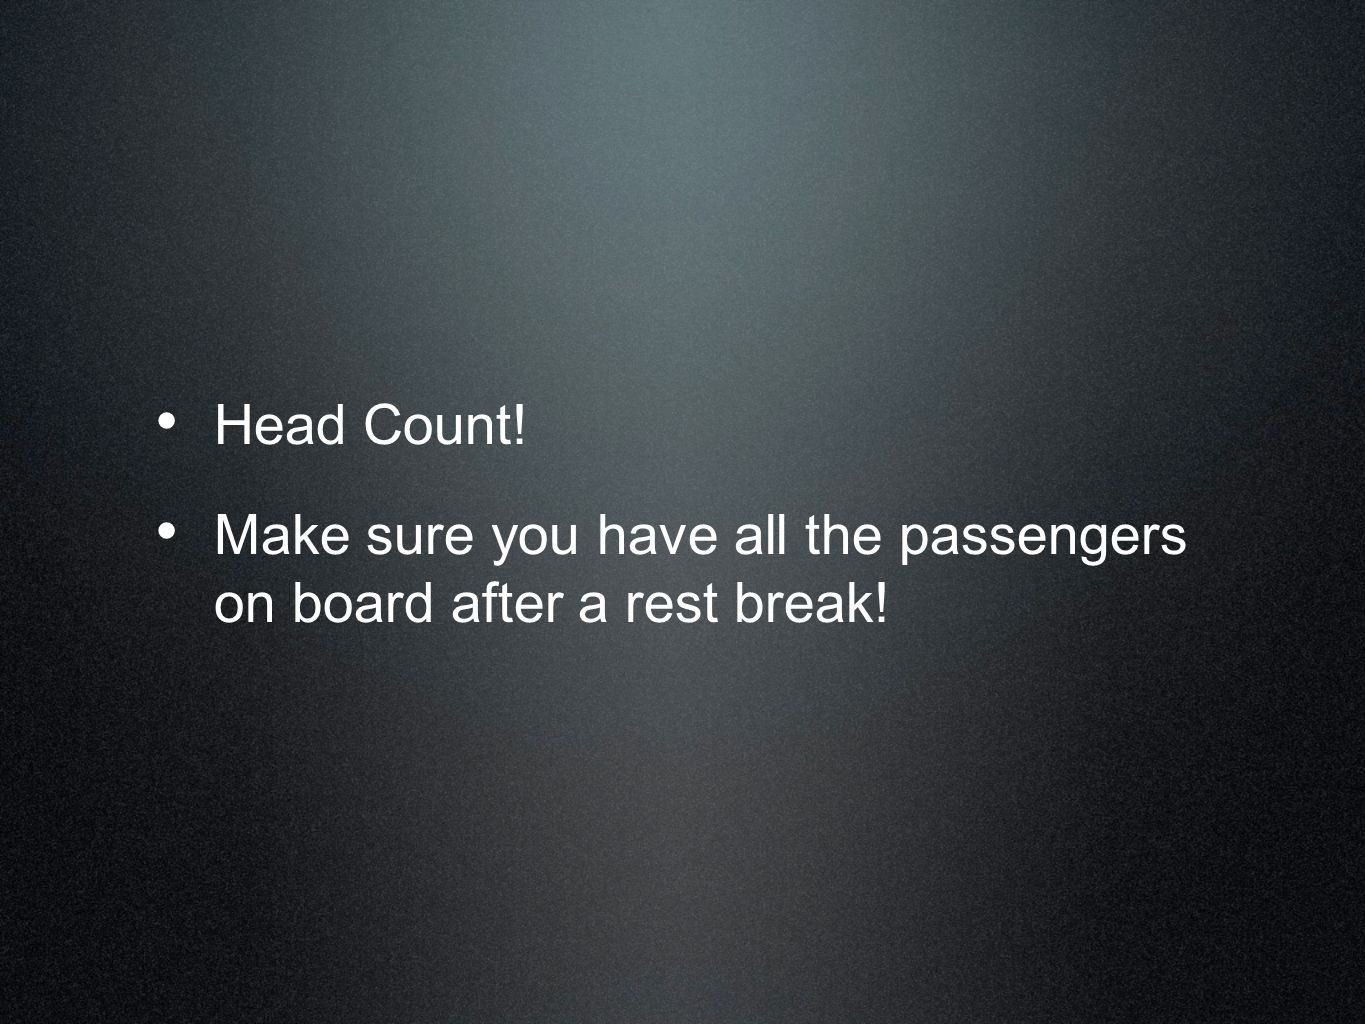 Head Count! Make sure you have all the passengers on board after a rest break!